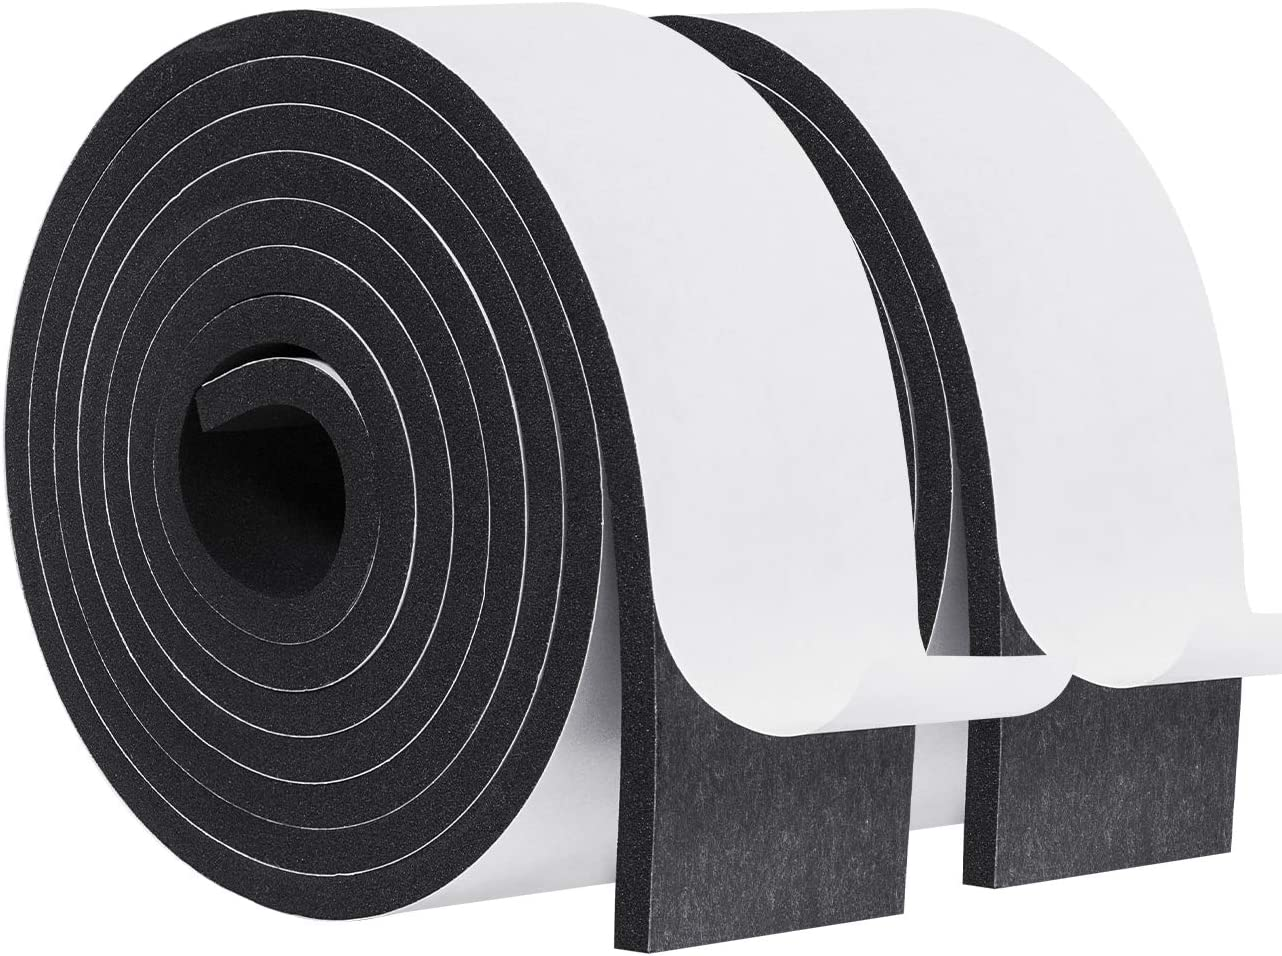 Weather Stripping-2 Rolls, 2 Inch Wide X 1/4 Inch Thick Foam Tape High Density Foam Seal Strip Door Weatherstrip Adhesive Insulation Foam Total 13 Feet Long(6.5ft x 2 Rolls )